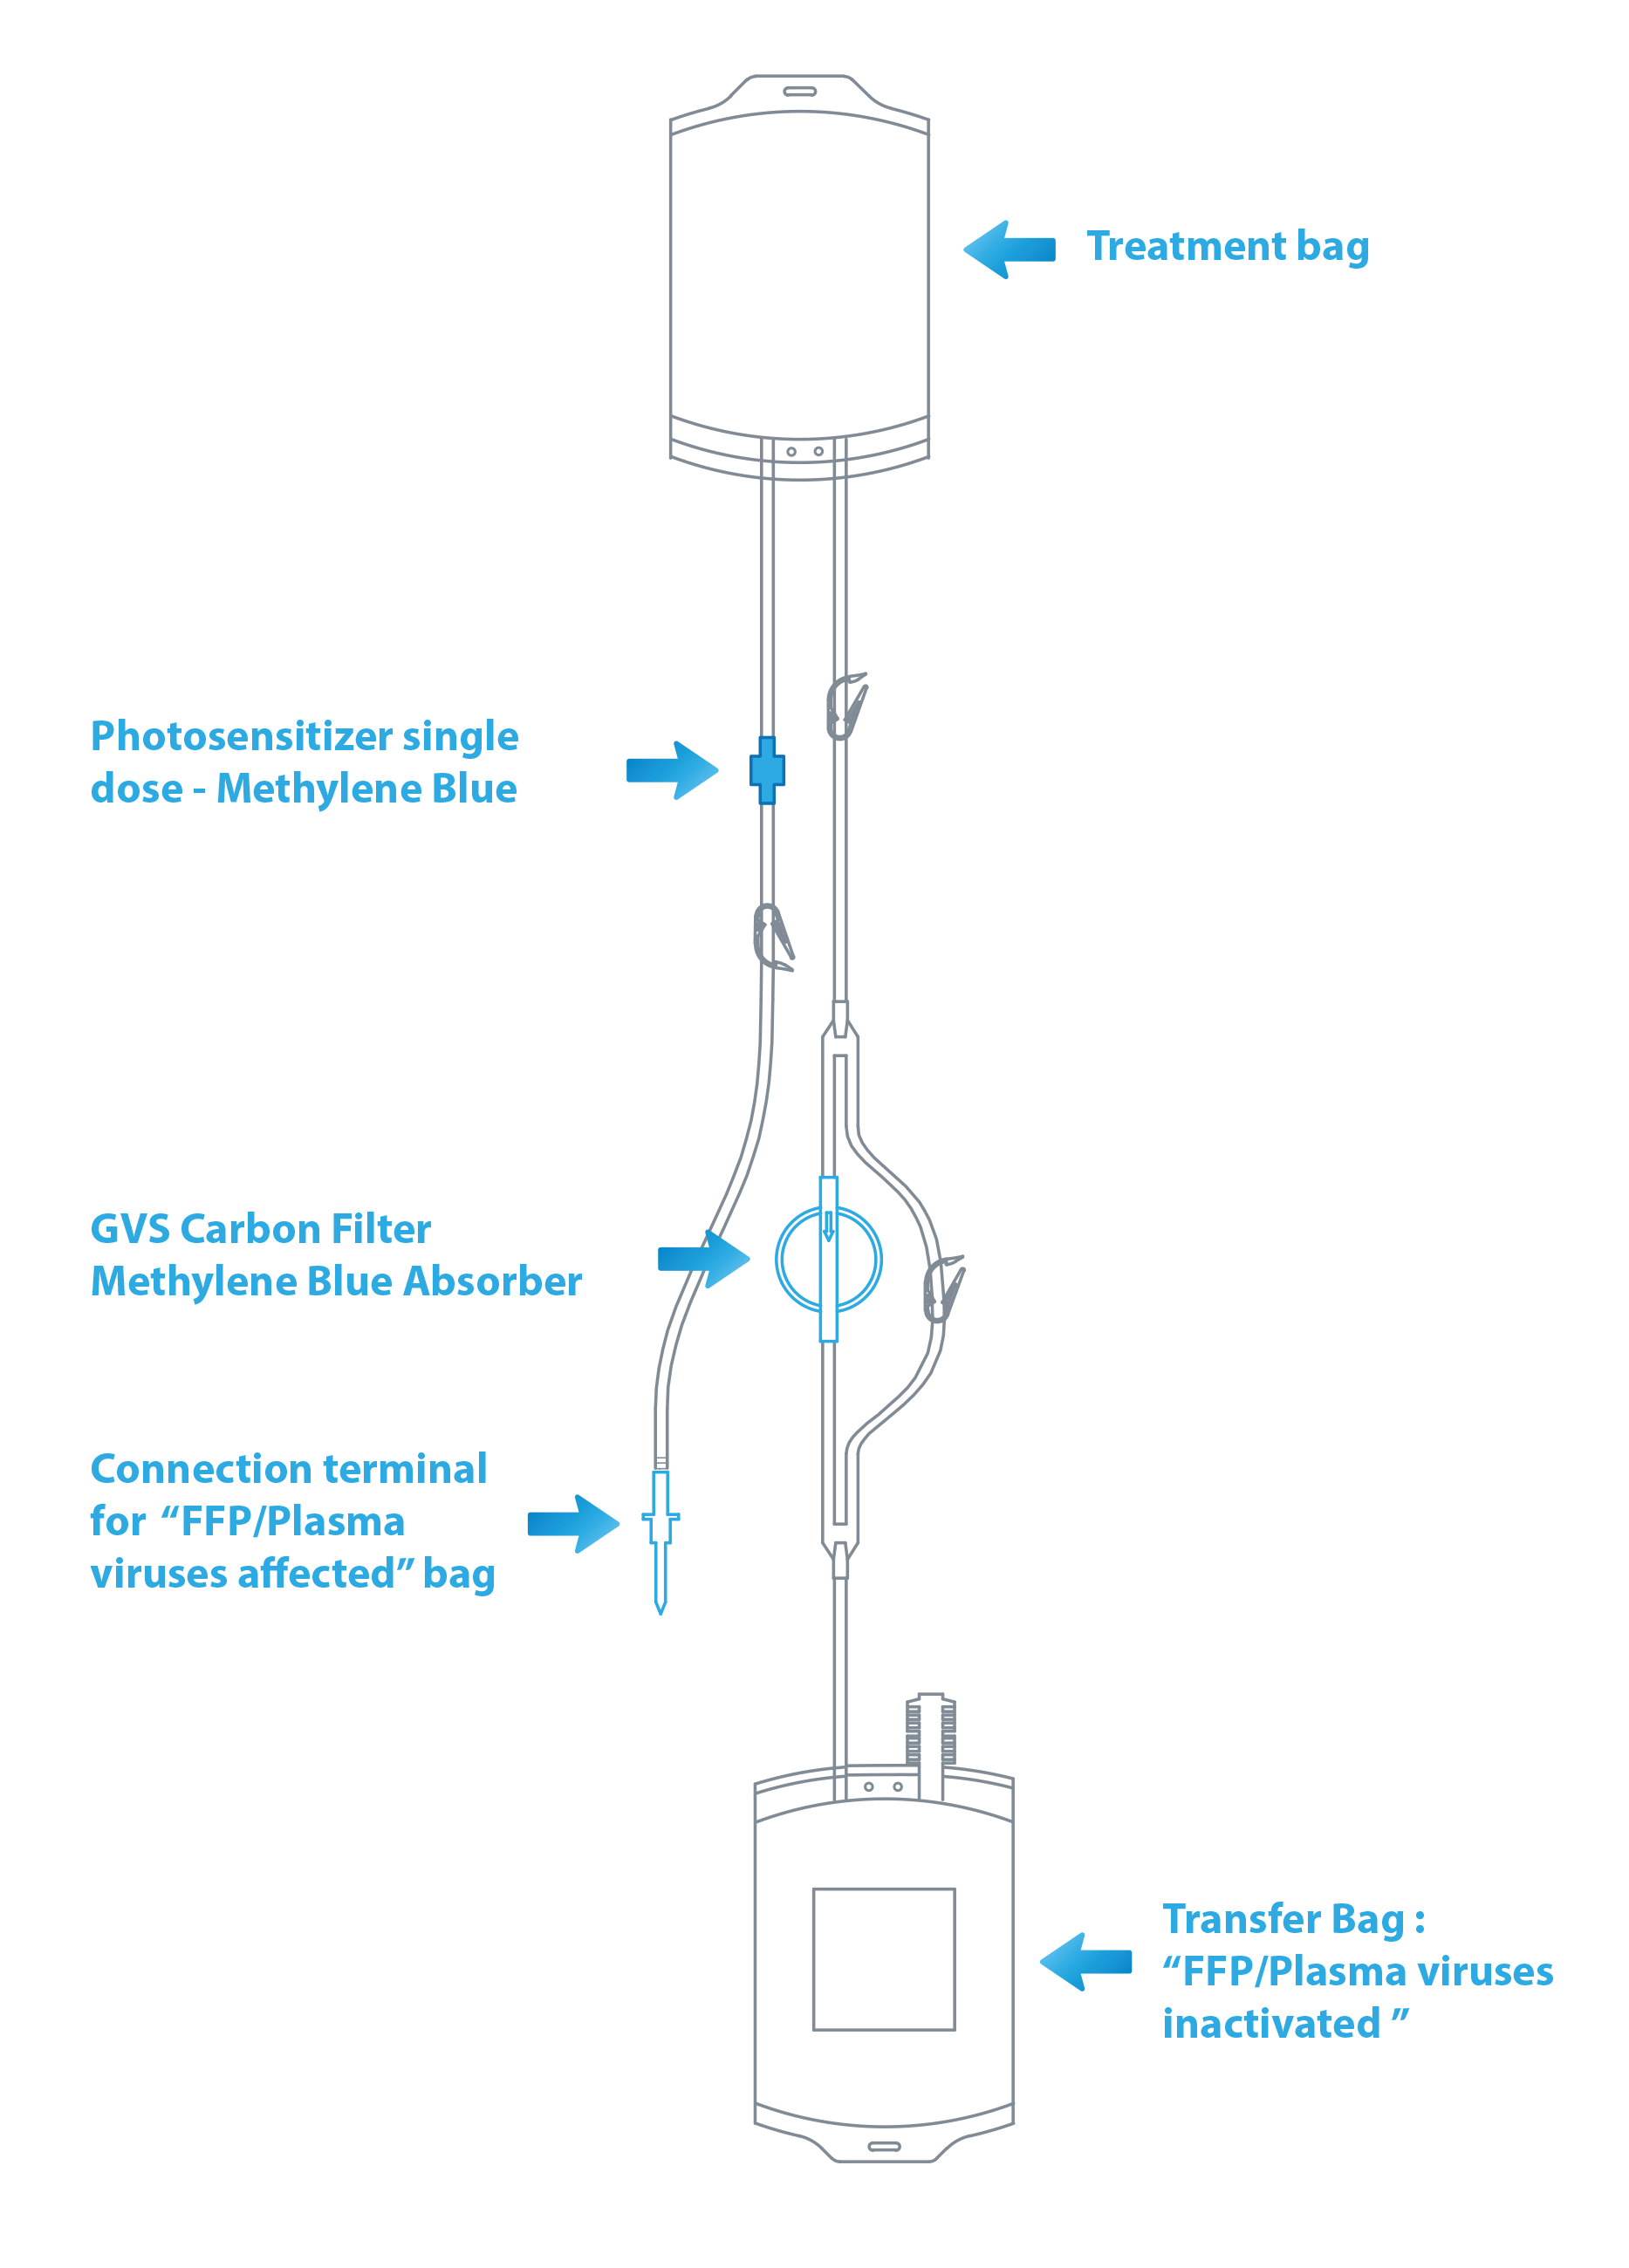 <i>The GVS's MB filter sets are ETO sterile medical devices featured easy to use for Plasma Viruses Inactivation processes performed in the Blood Bank: the target is productions of high quality inactivated plasma (plasma safe) through simple way and saving time.</i>